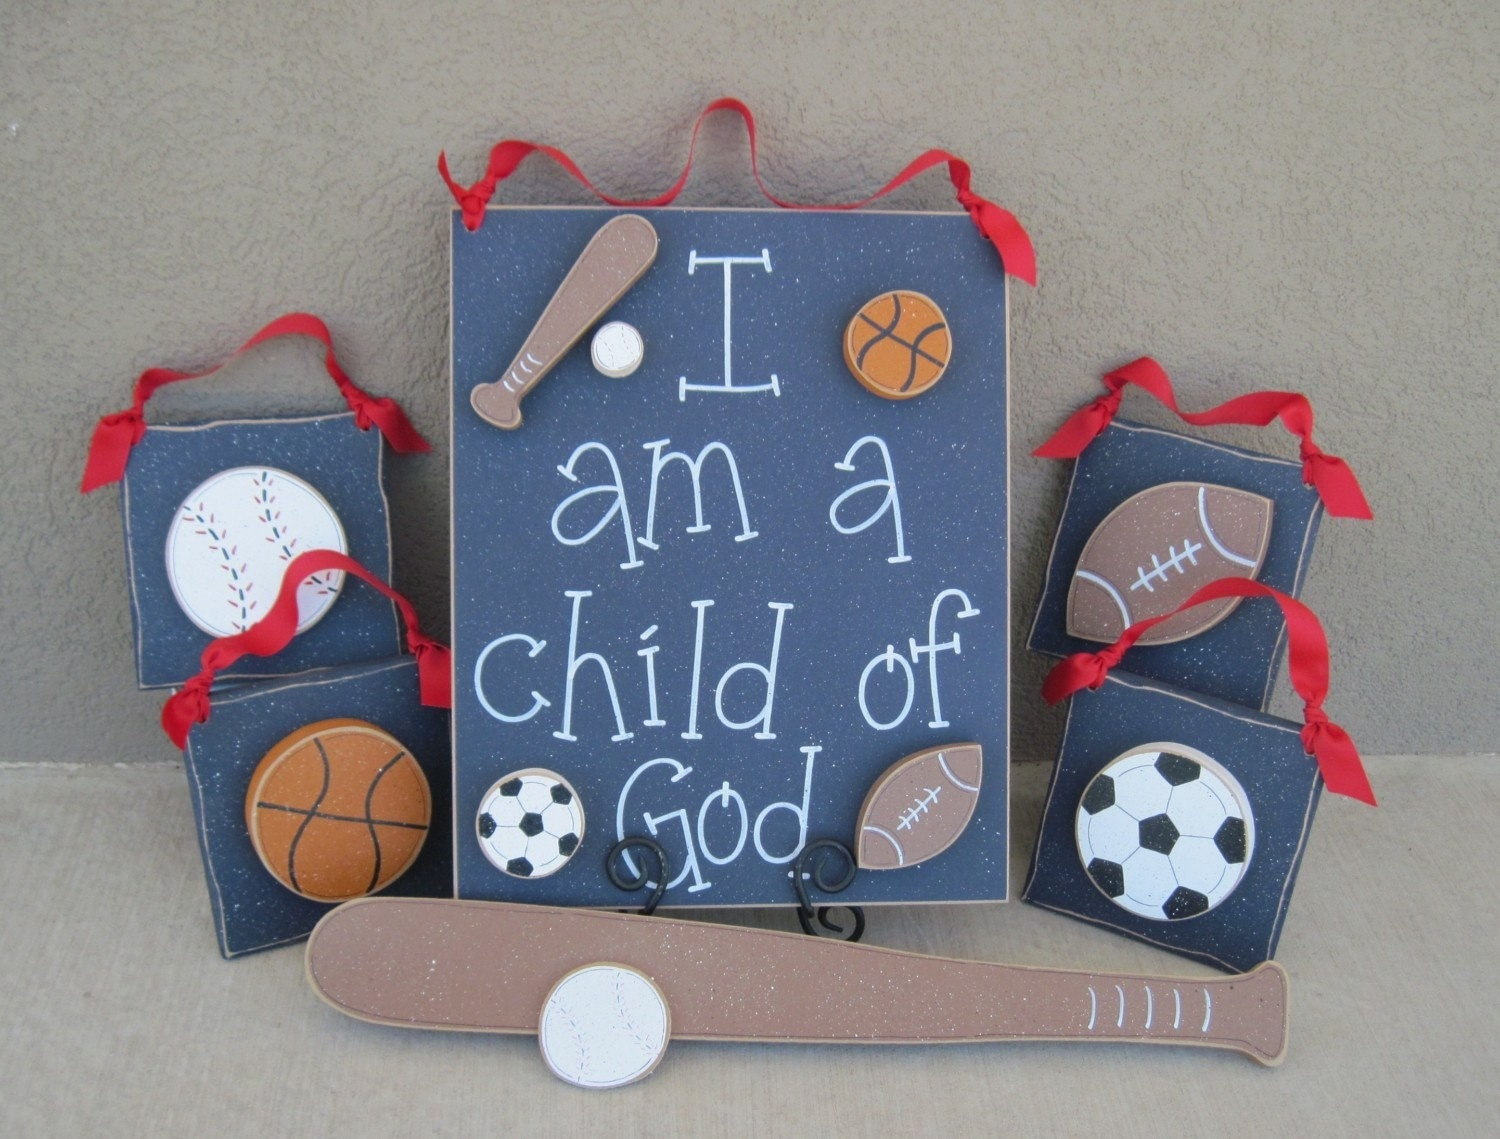 Sports Themed Room Decor: Set Of Sports Themed Boy Decor With A CHILD OF GOD By Lisabees